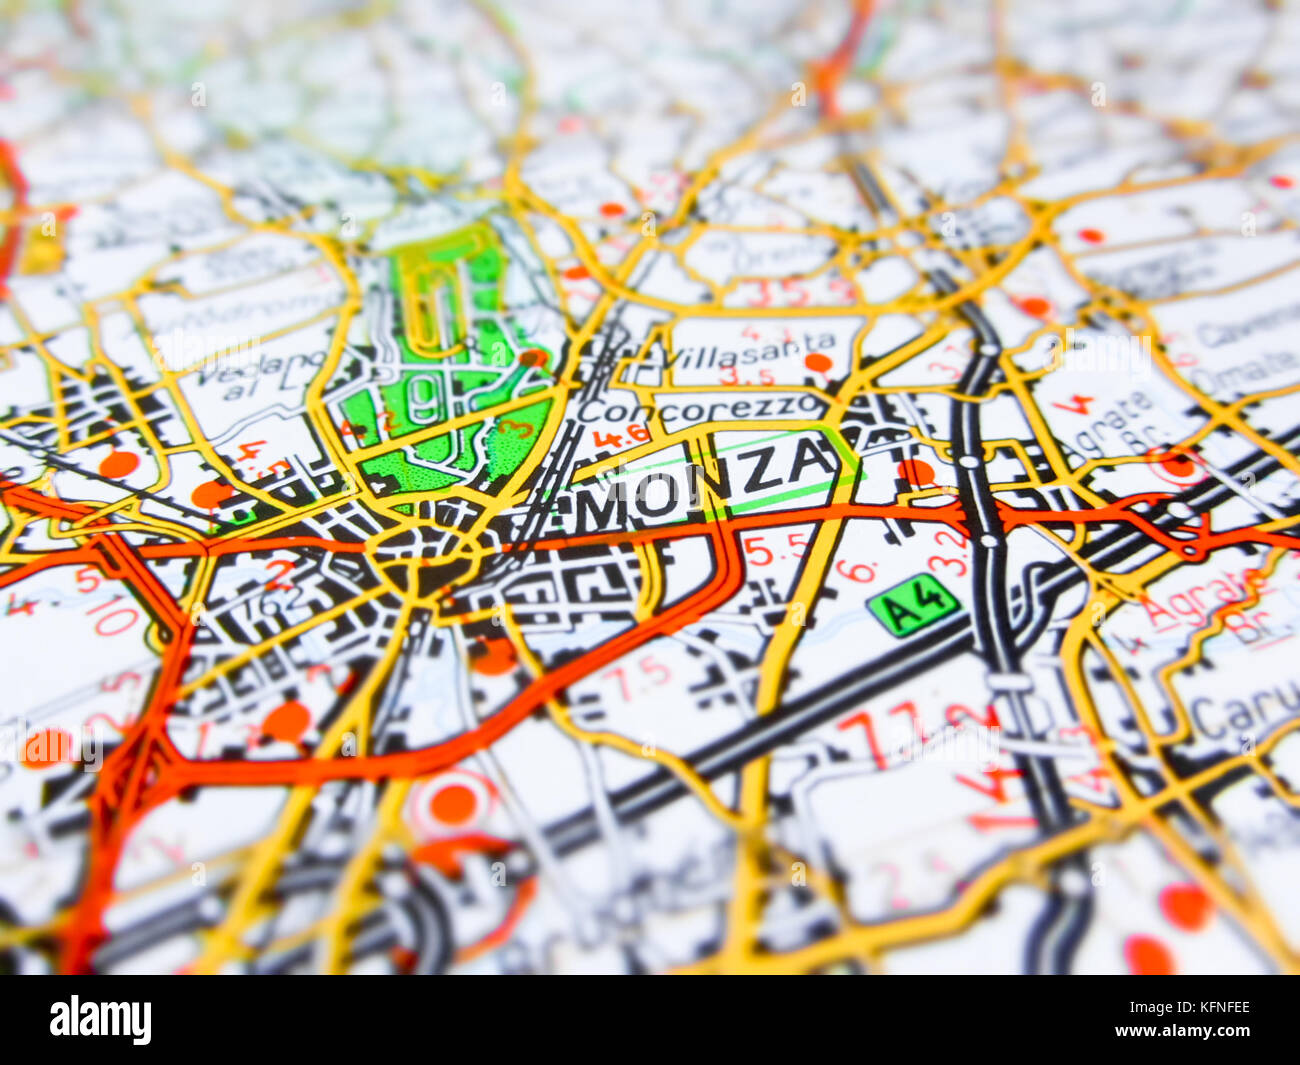 Monza City Over A Road Map Italy Stock Photo 164586310 Alamy